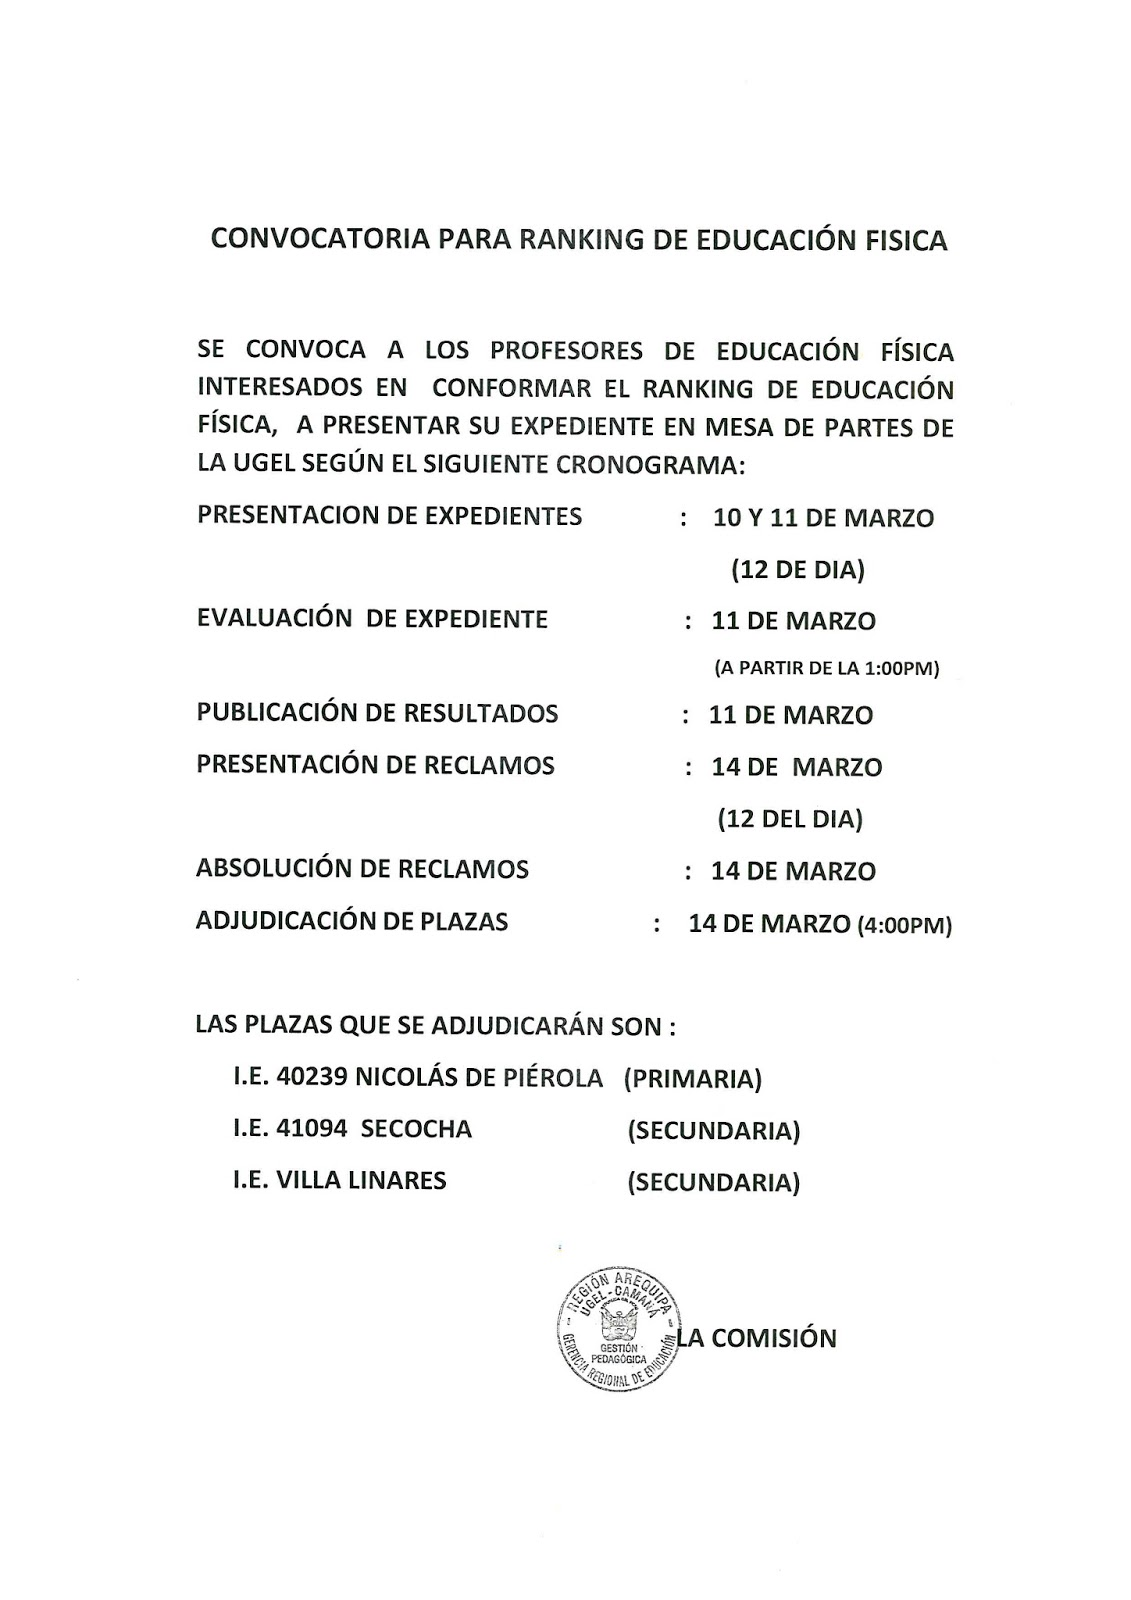 Convocatoria para plaza de educaci n f sica ugel caman for Convocatoria plazas docentes